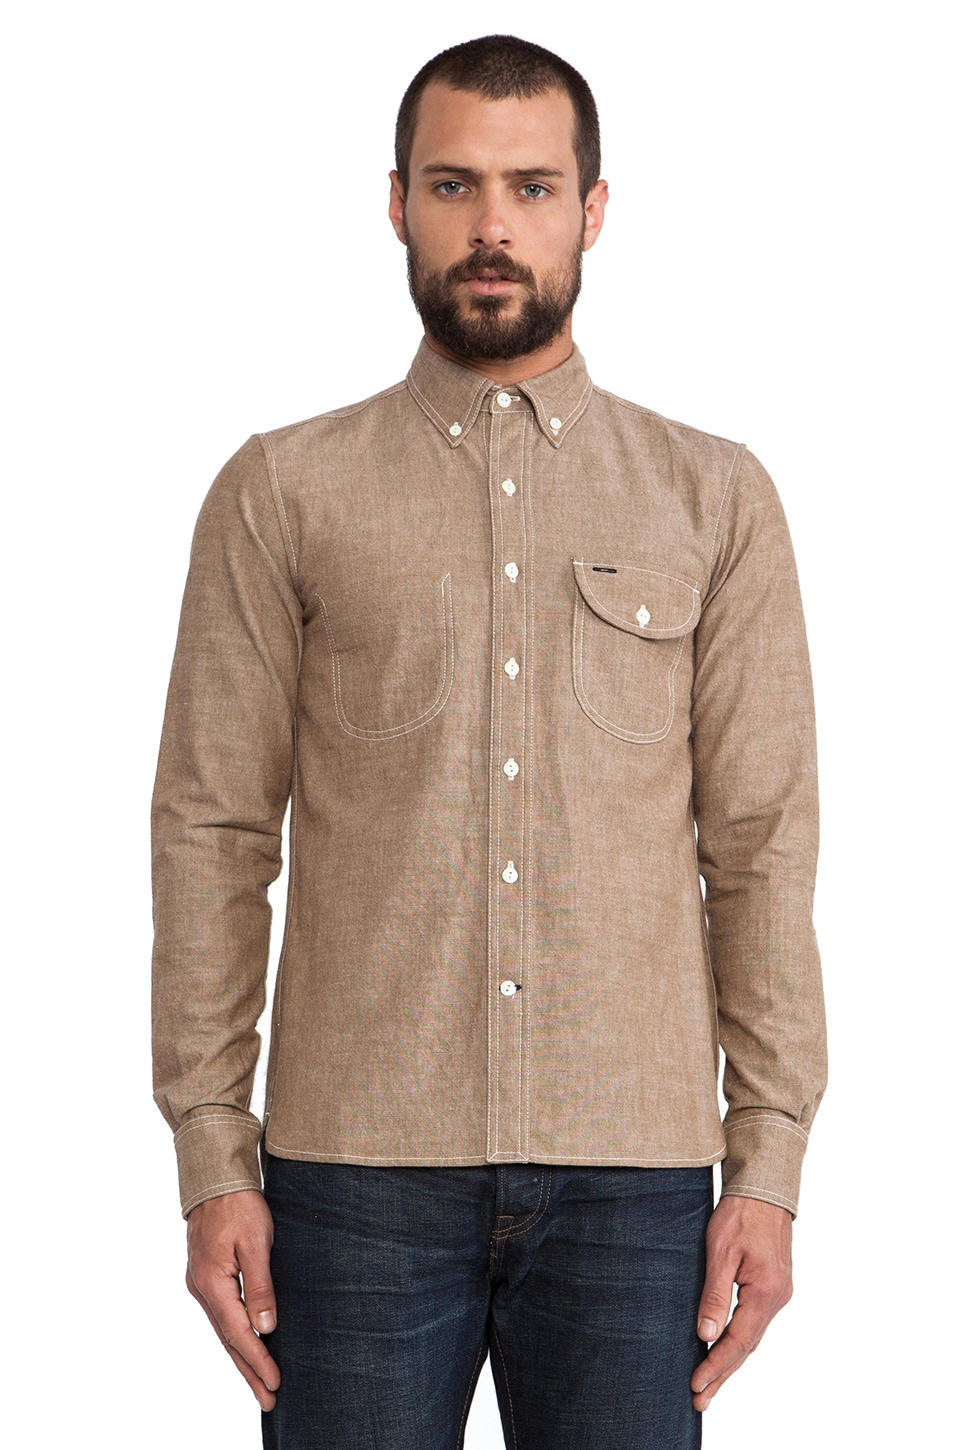 Rogue Territory Jumper Shirt Long Sleeve in Brown Chambray